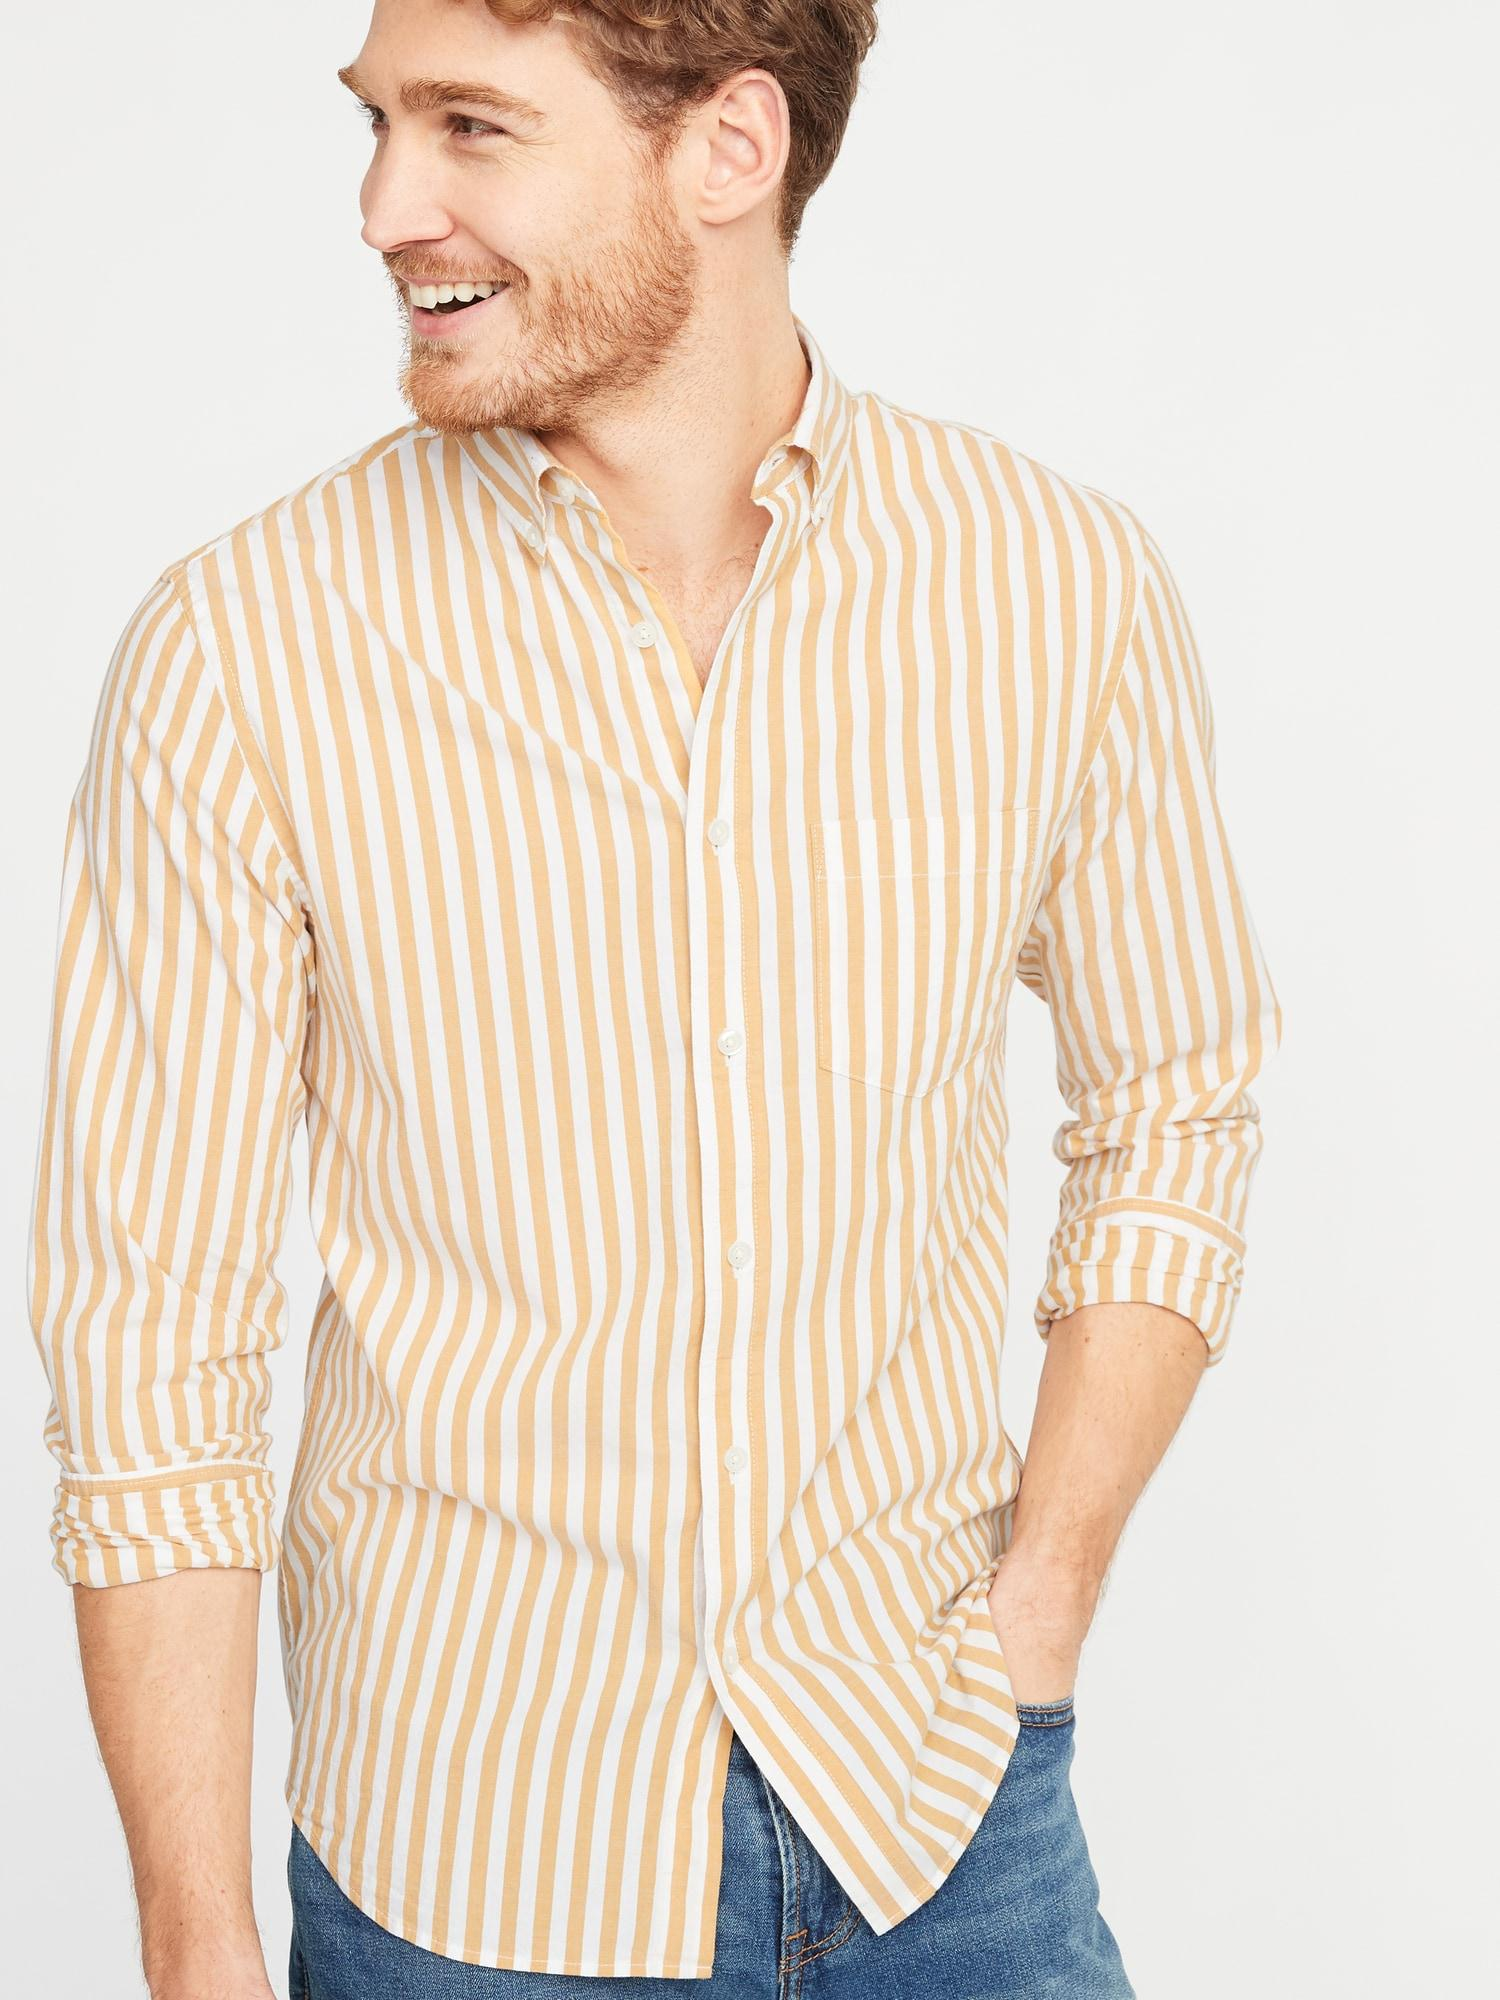 Lyst - Old Navy Slim-fit Built-in Flex Striped Everyday Shirt for Men 5530f8186